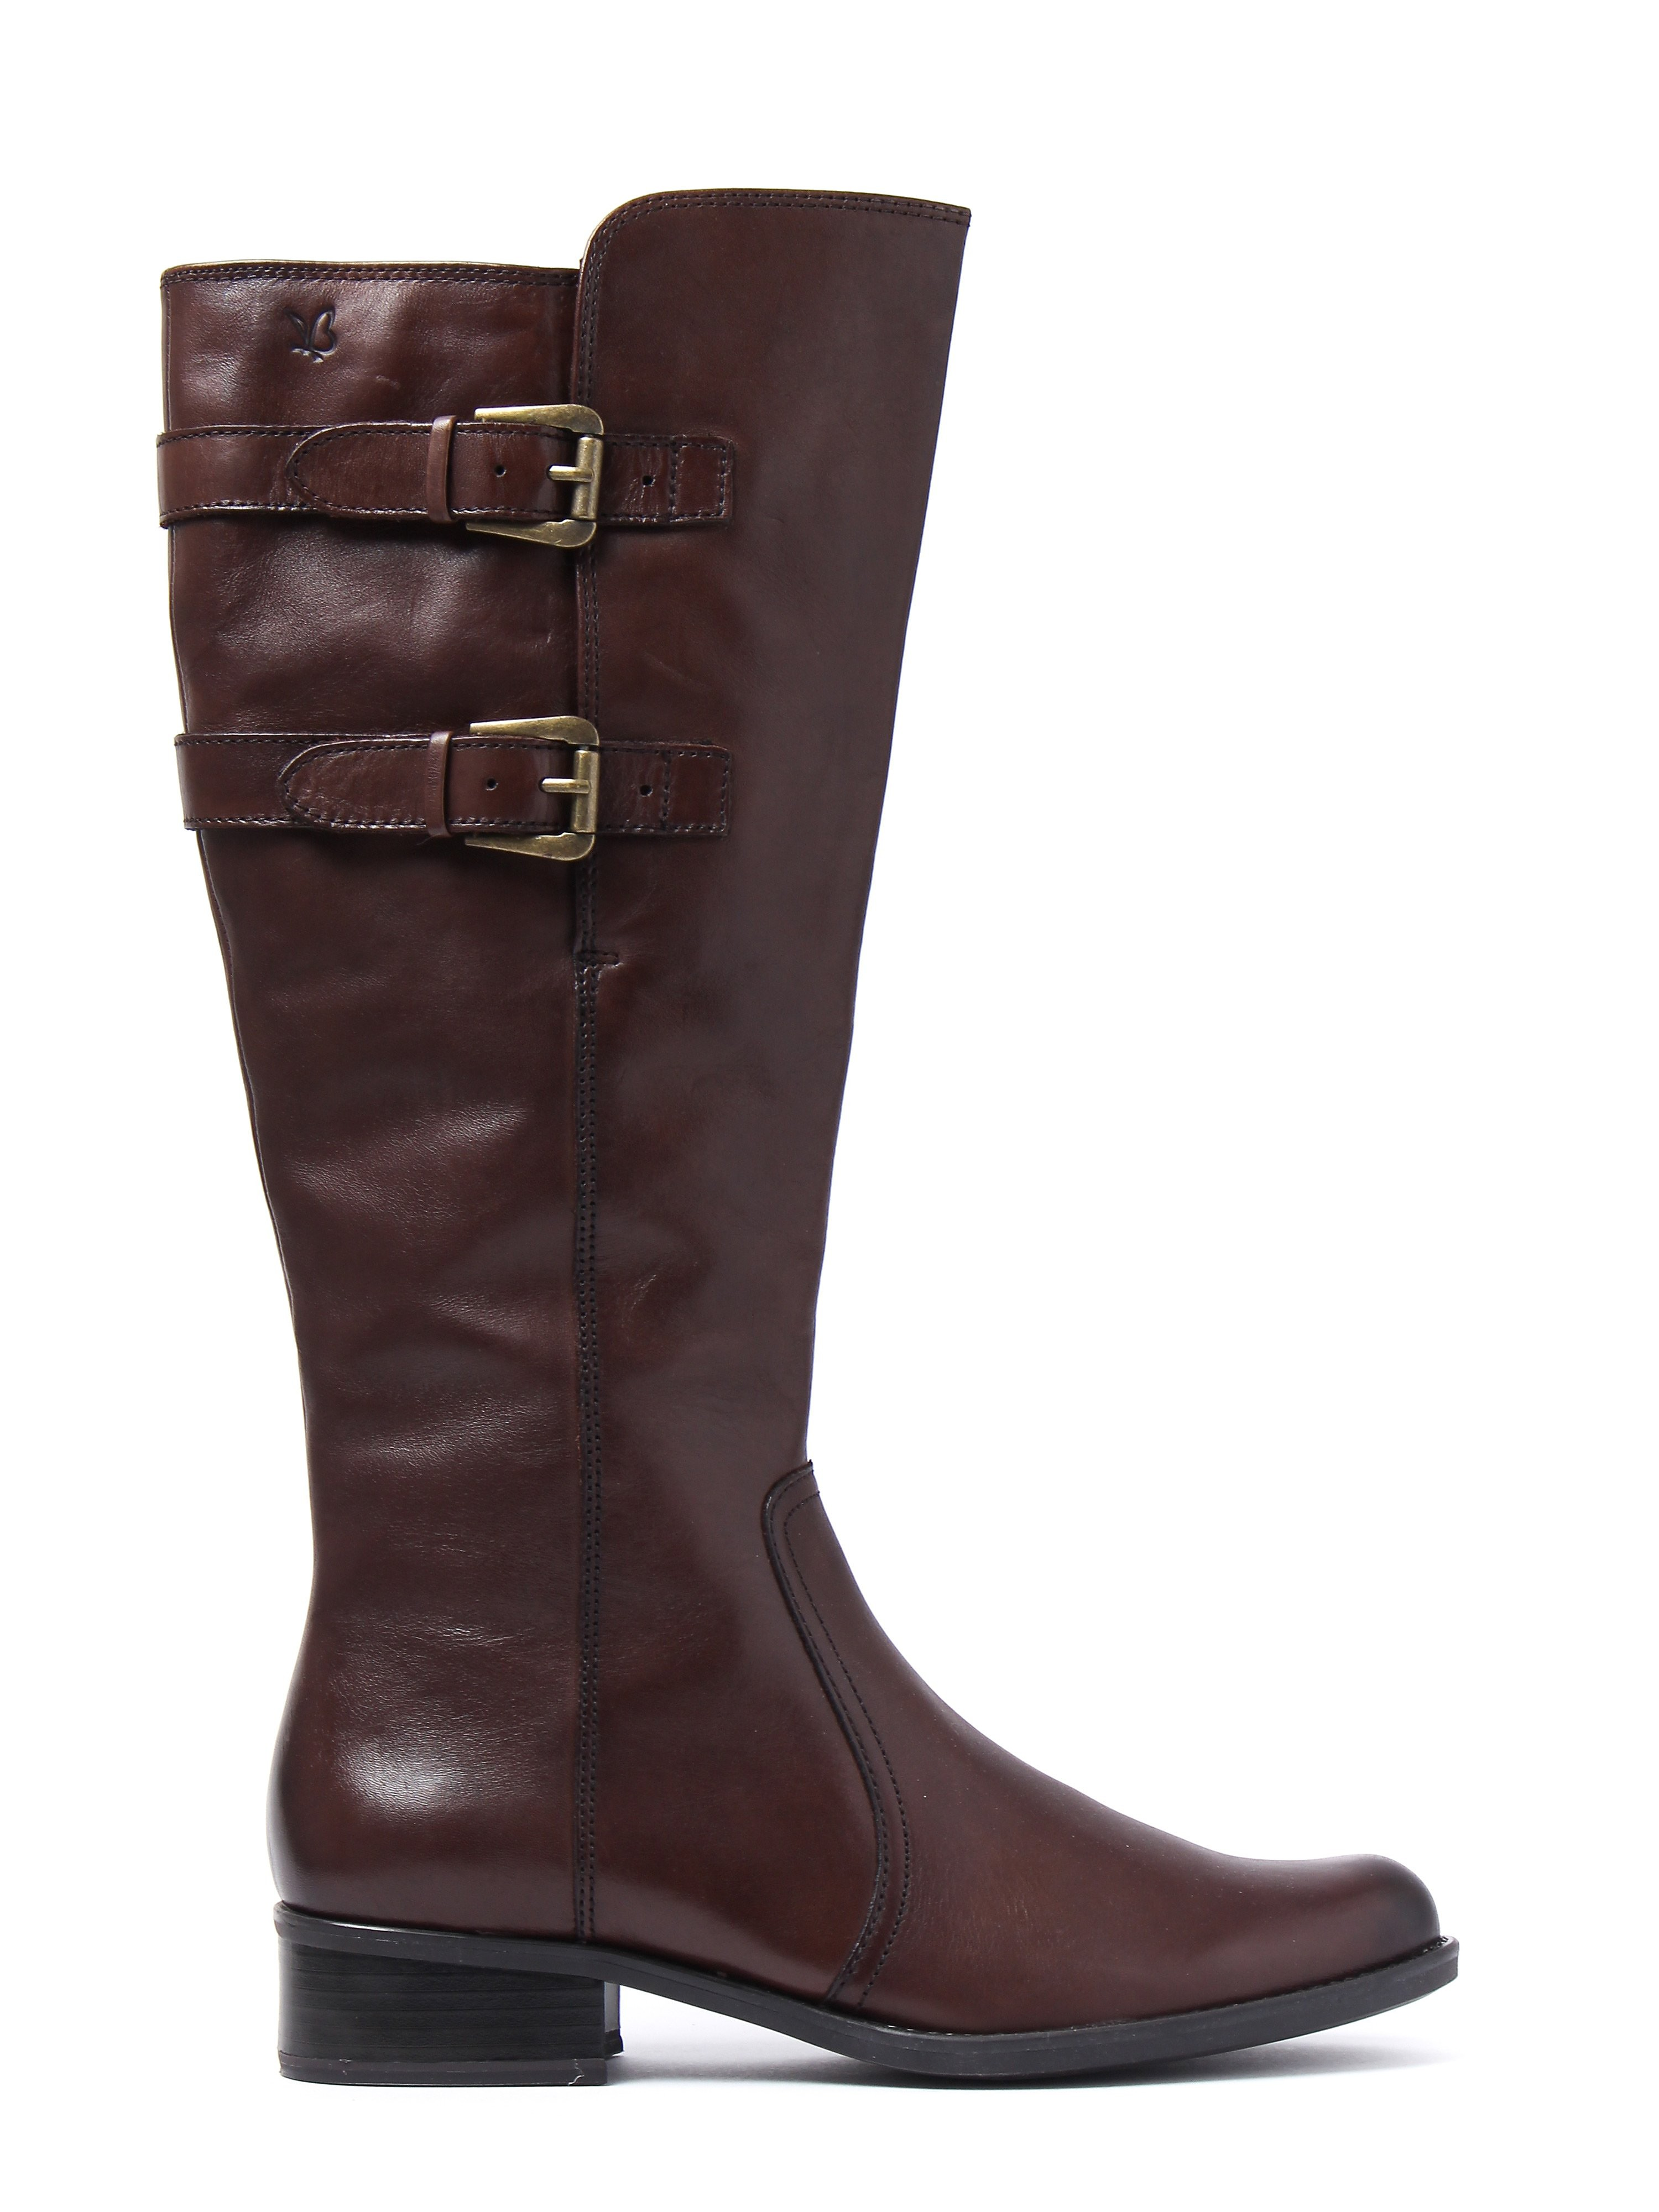 Caprice Women's Nappa Tall Buckle Boots - Dark Brown Leather